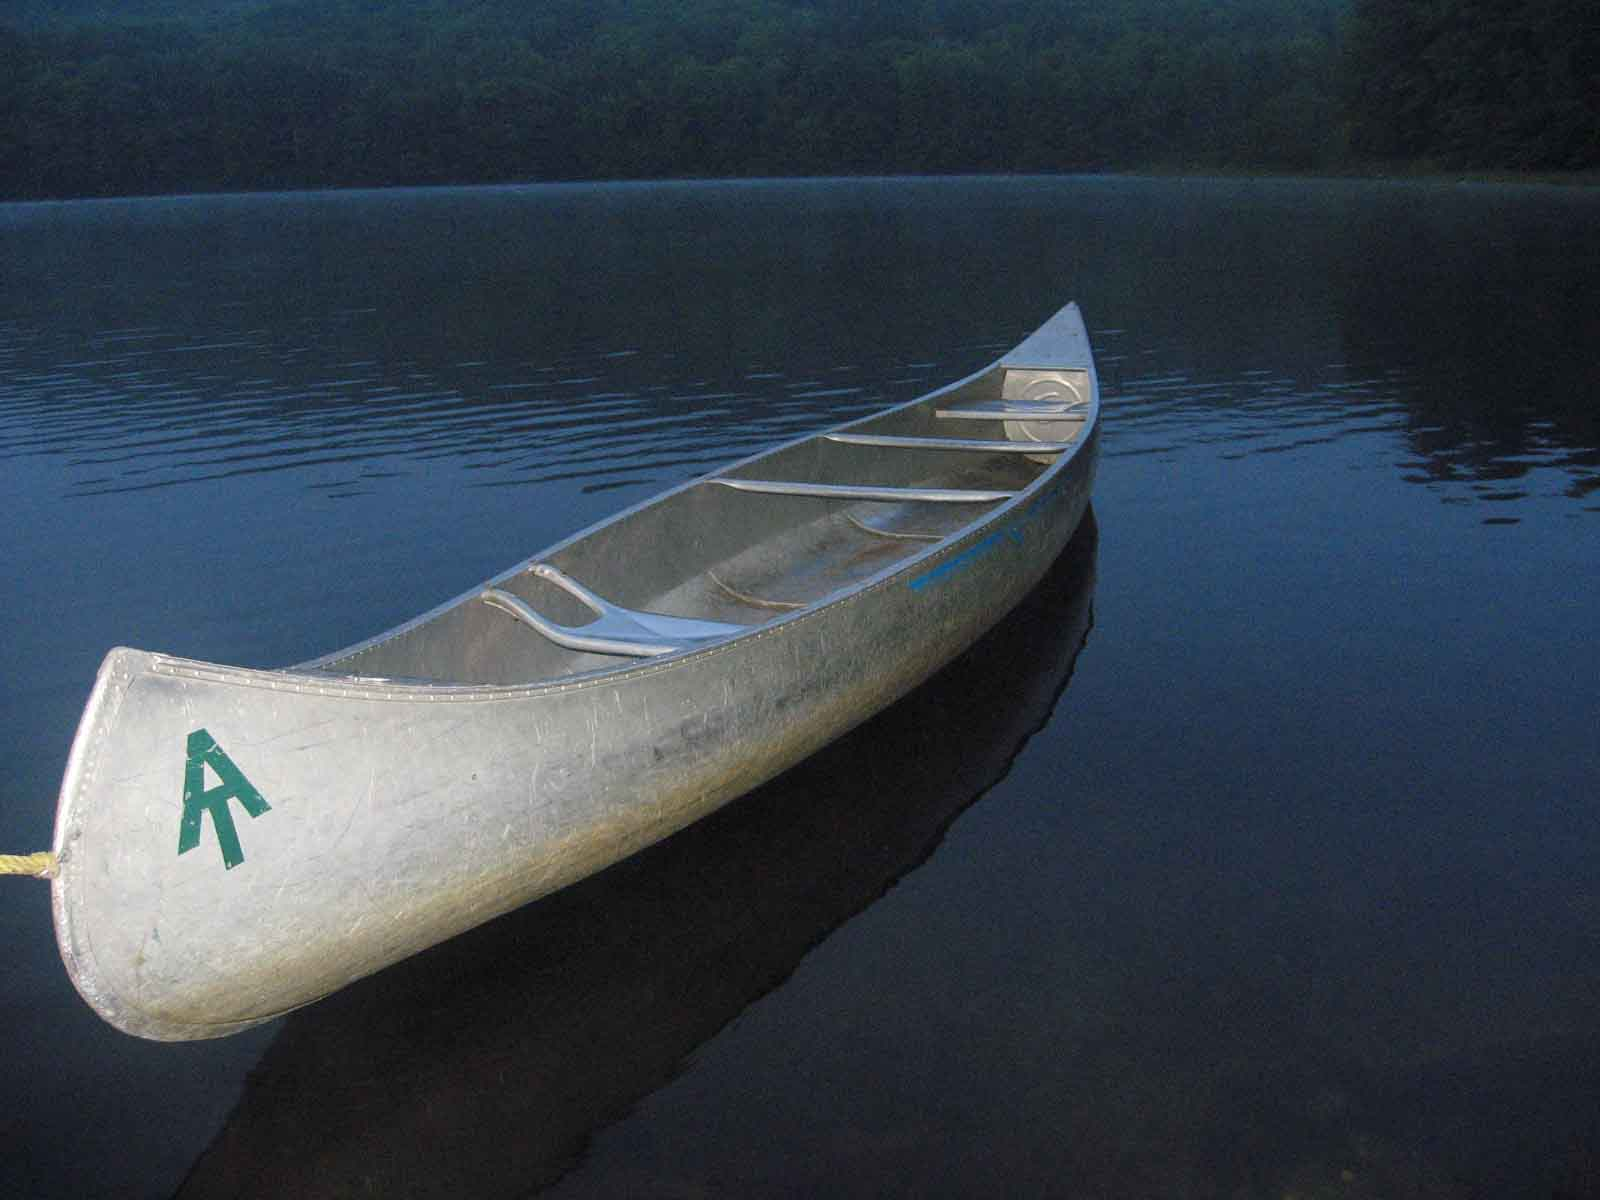 The caretakers canoe by Upper Goose Pond.